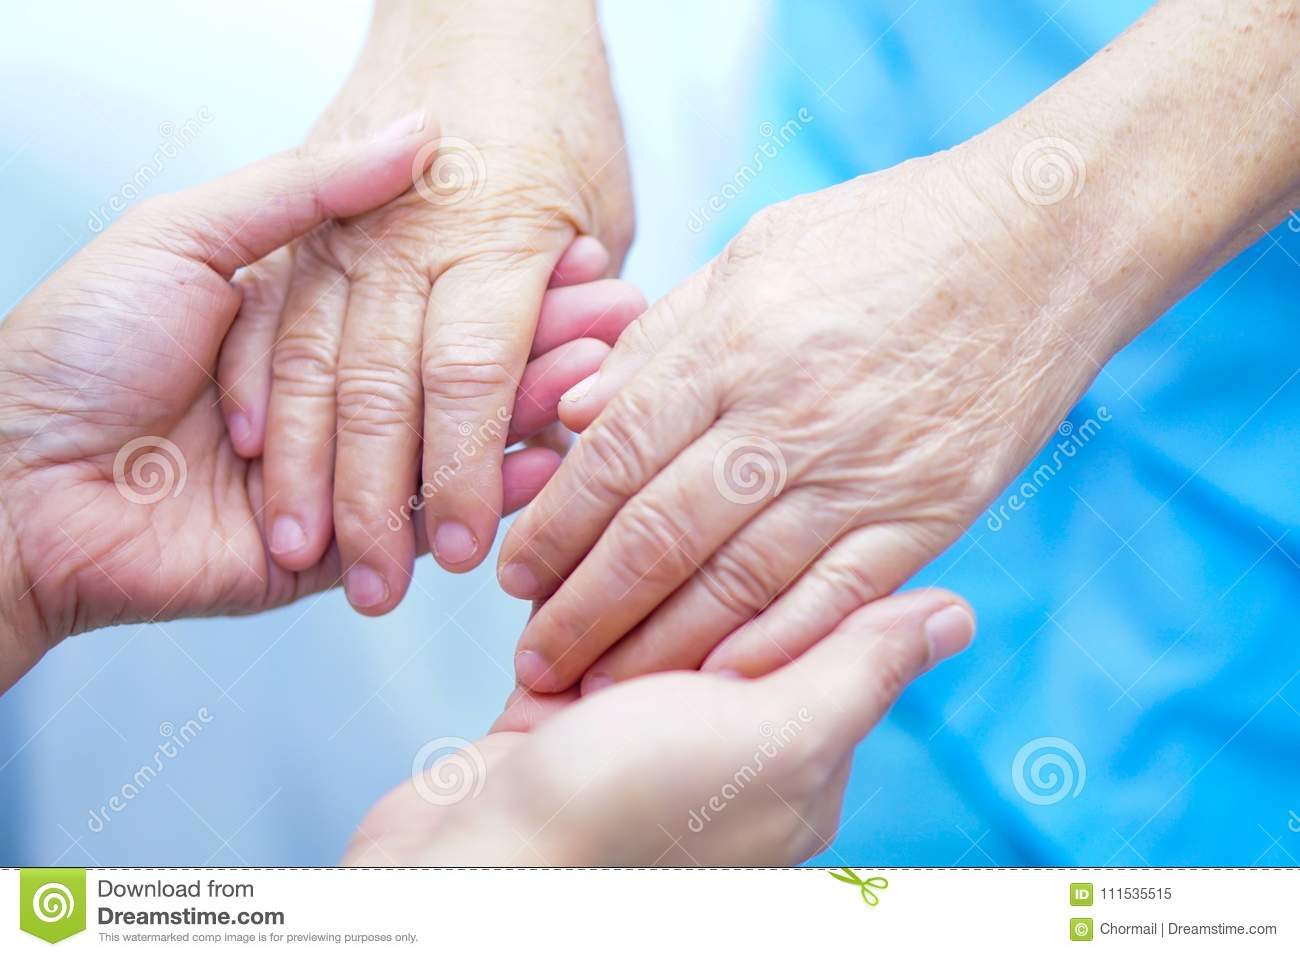 Elderly Woman Stock Images - Download 177,962 Royalty Free ...